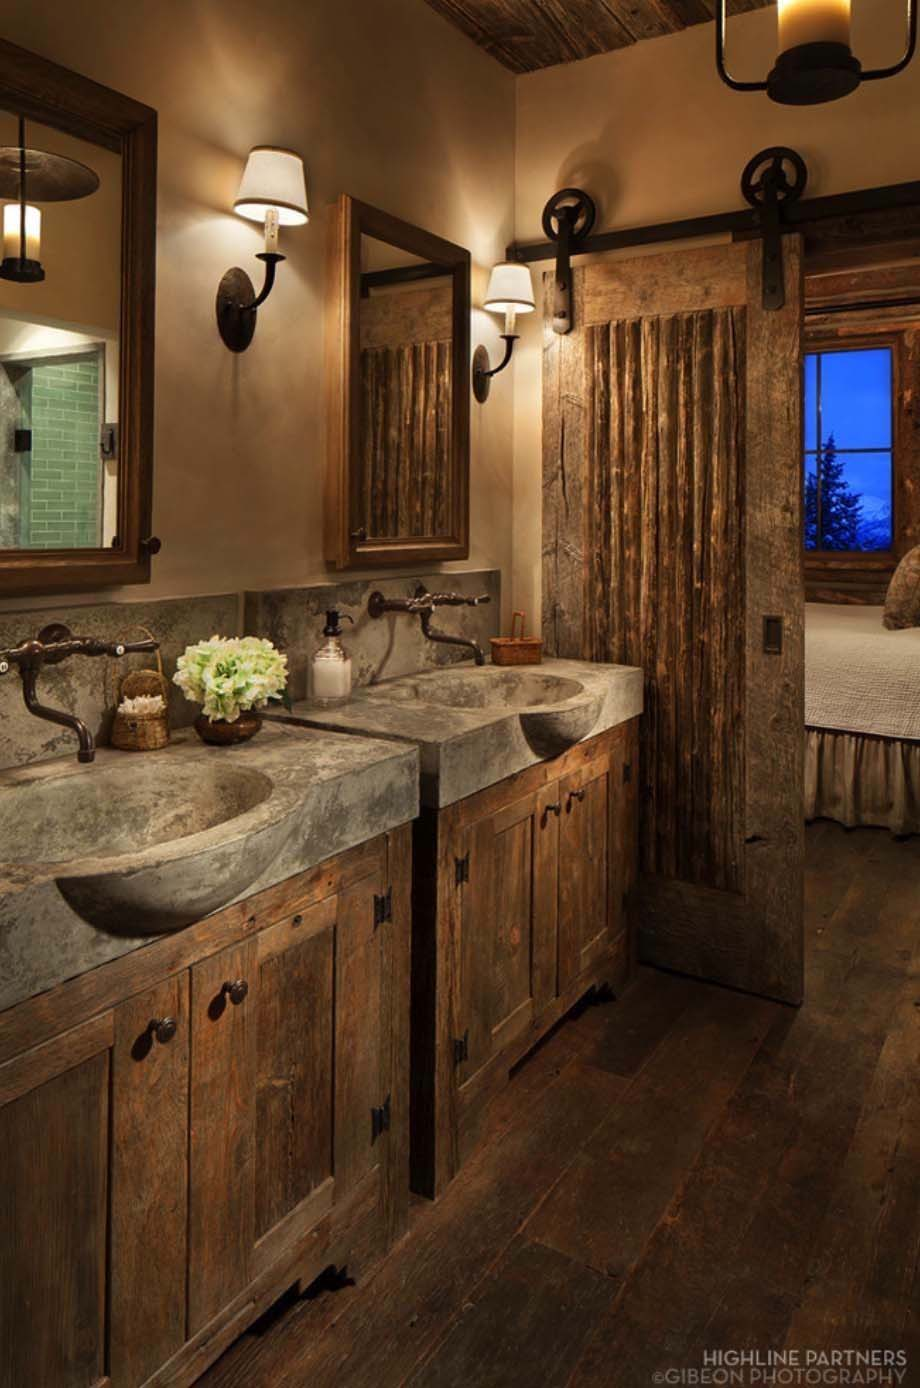 Rustic Bathroom Design Ideas Fascinating 31 Best Rustic Bathroom Design And Decor Ideas For 2017 Design Ideas